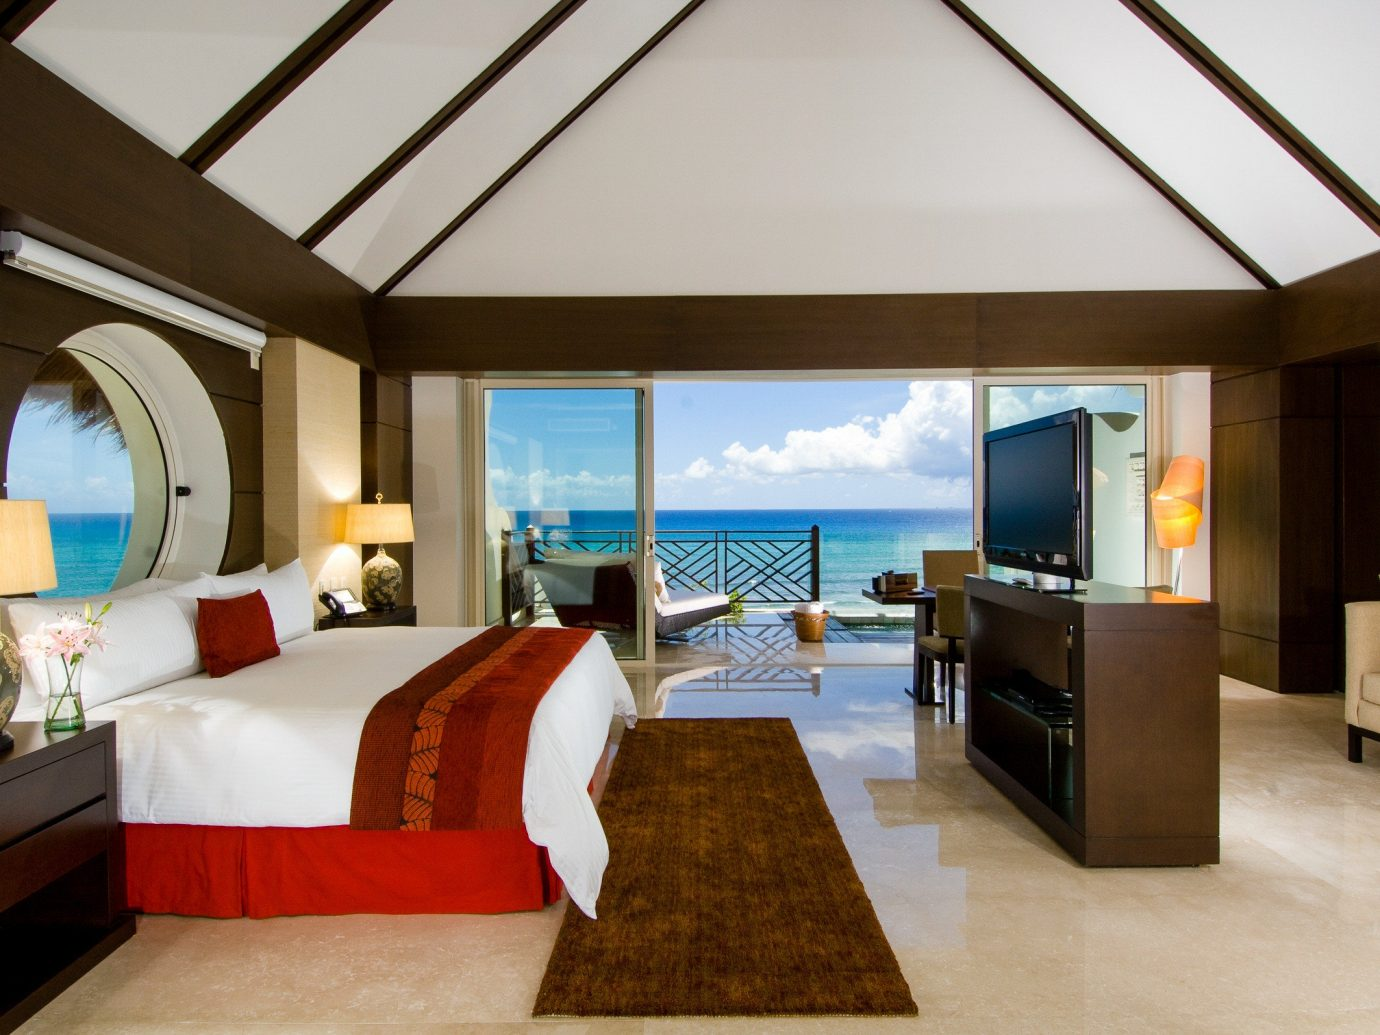 All-inclusive All-Inclusive Resorts Mexico Riviera Maya, Mexico indoor floor room wall sofa ceiling bed Living hotel Suite interior design Resort estate furniture real estate Bedroom penthouse apartment area